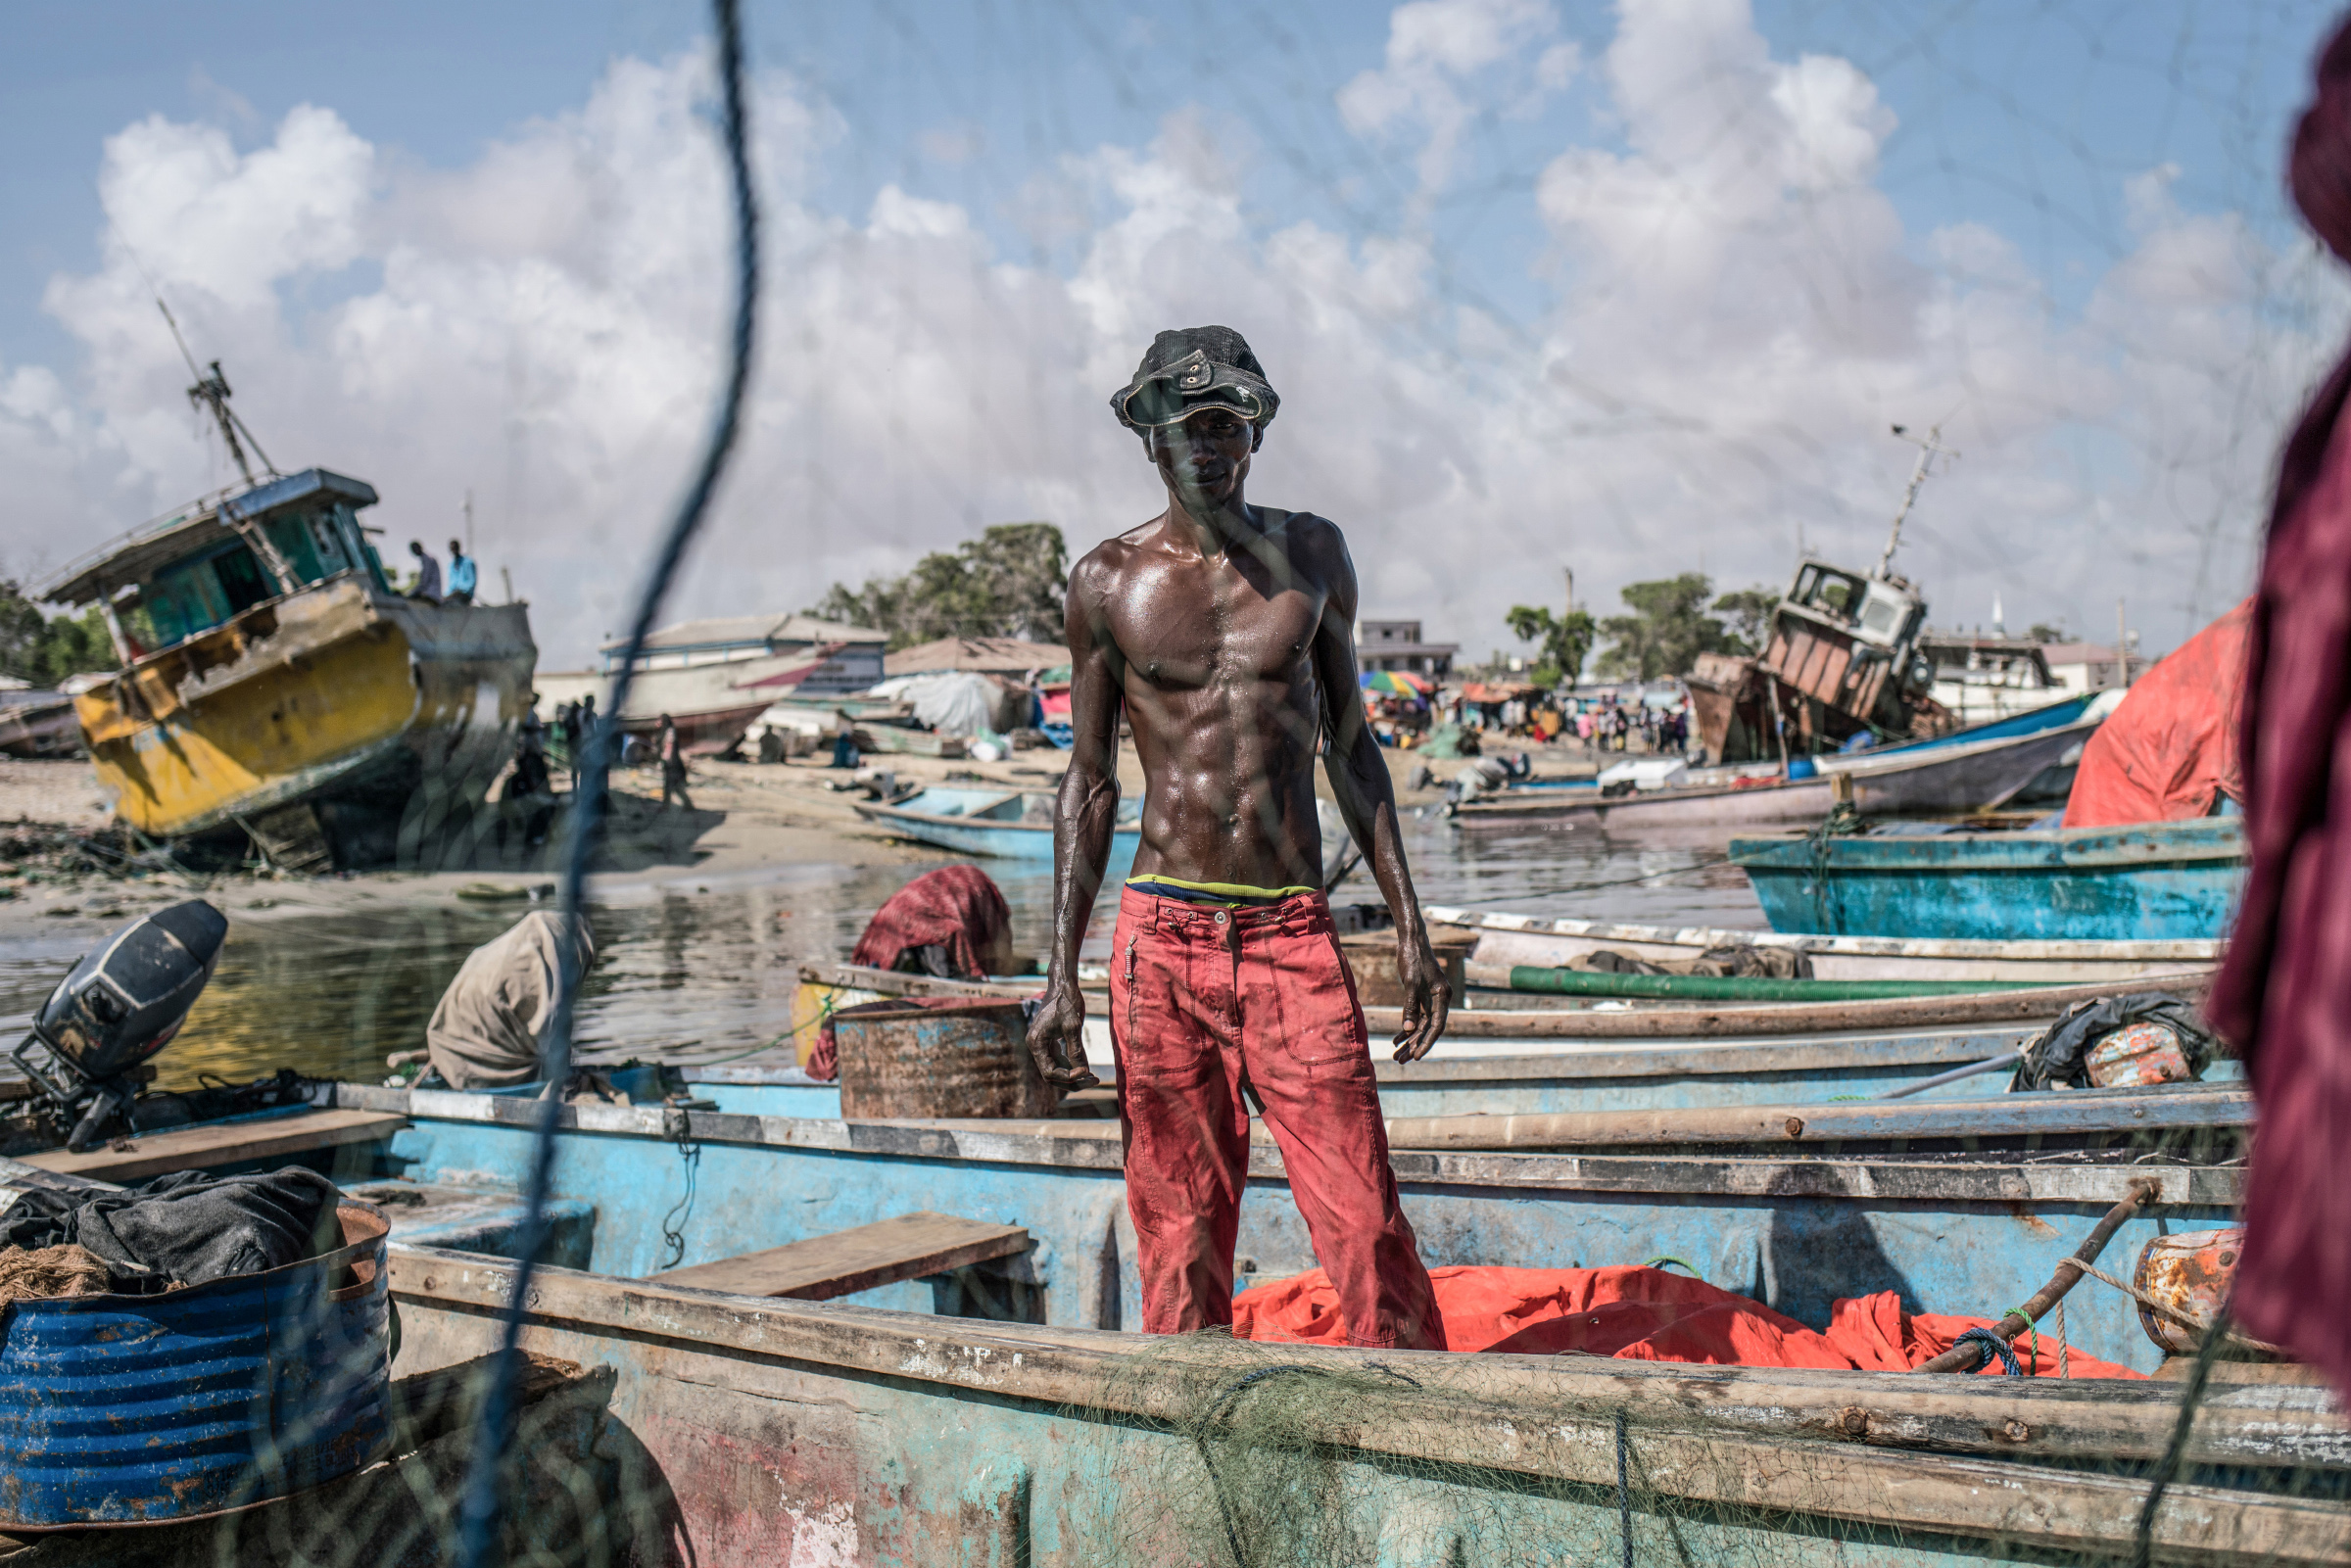 Fishermen untangle their nets in the port of Bosaso, the largest city in Puntland. (Photo by Nichole Sobecki/GroundTruth)